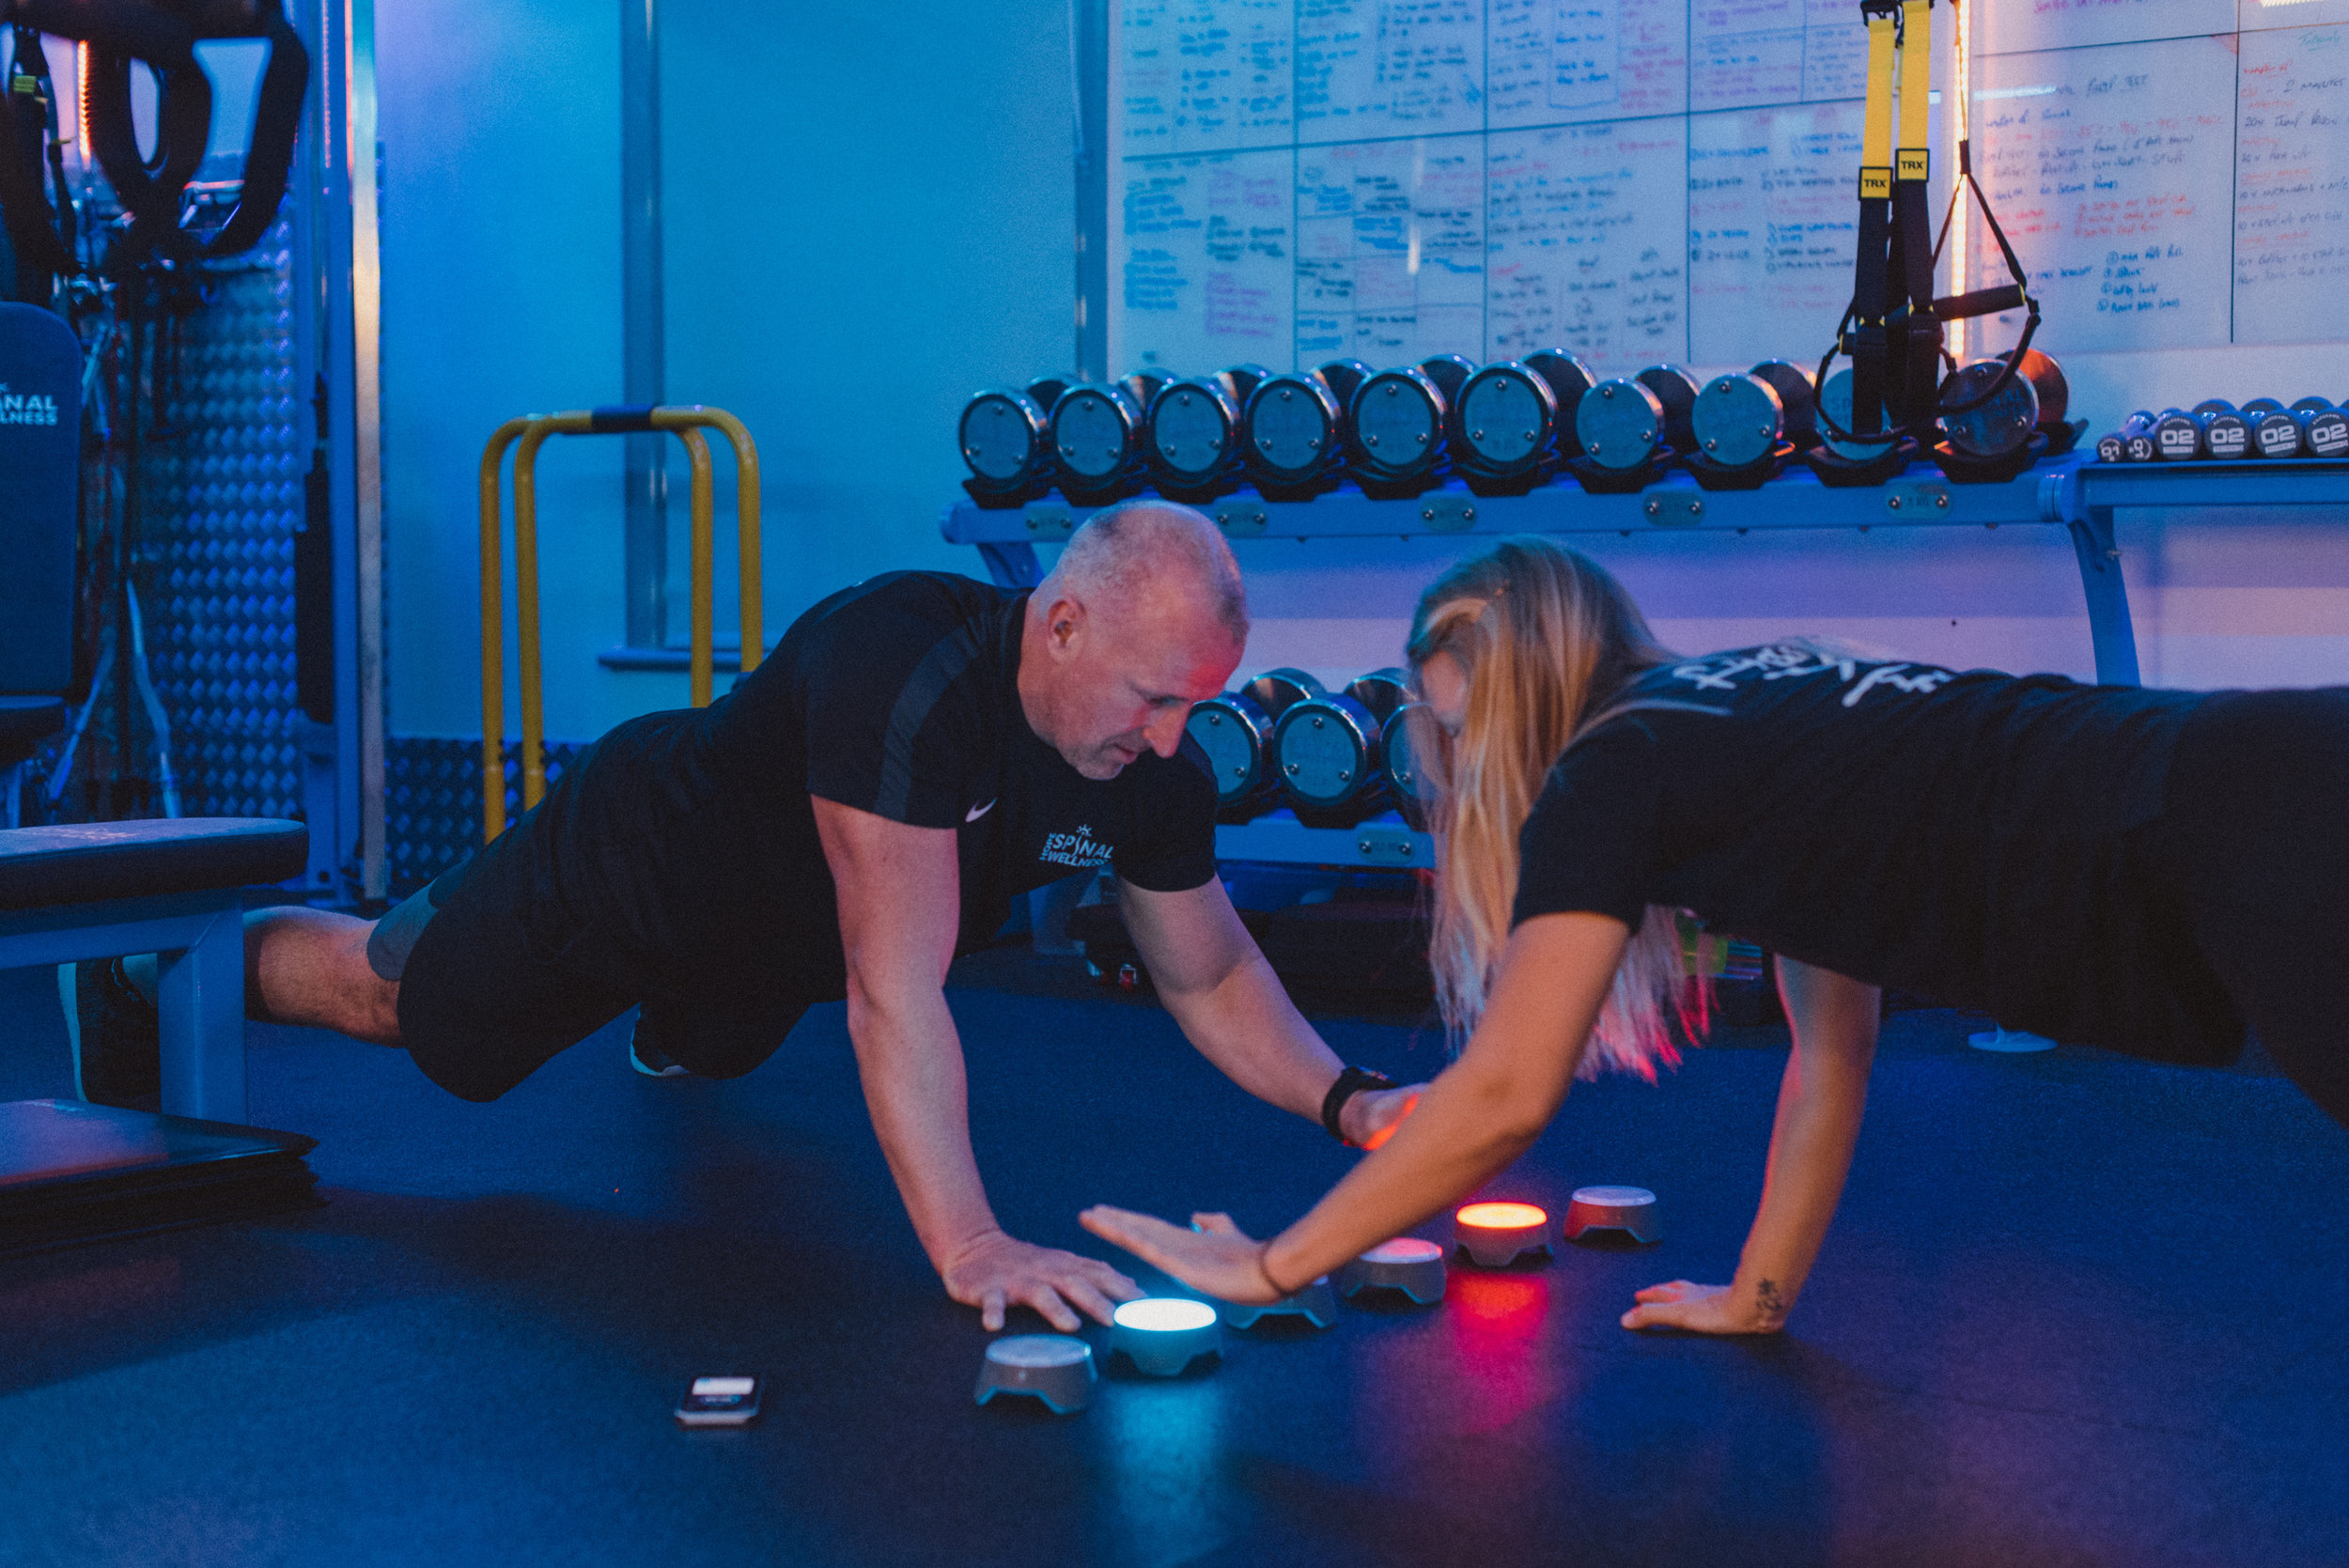 Functional Fitness - Life is motion! Our ethos is to get you active, fit and moving well again. To help you on the journey we have a state of the art boutique fitness facility.